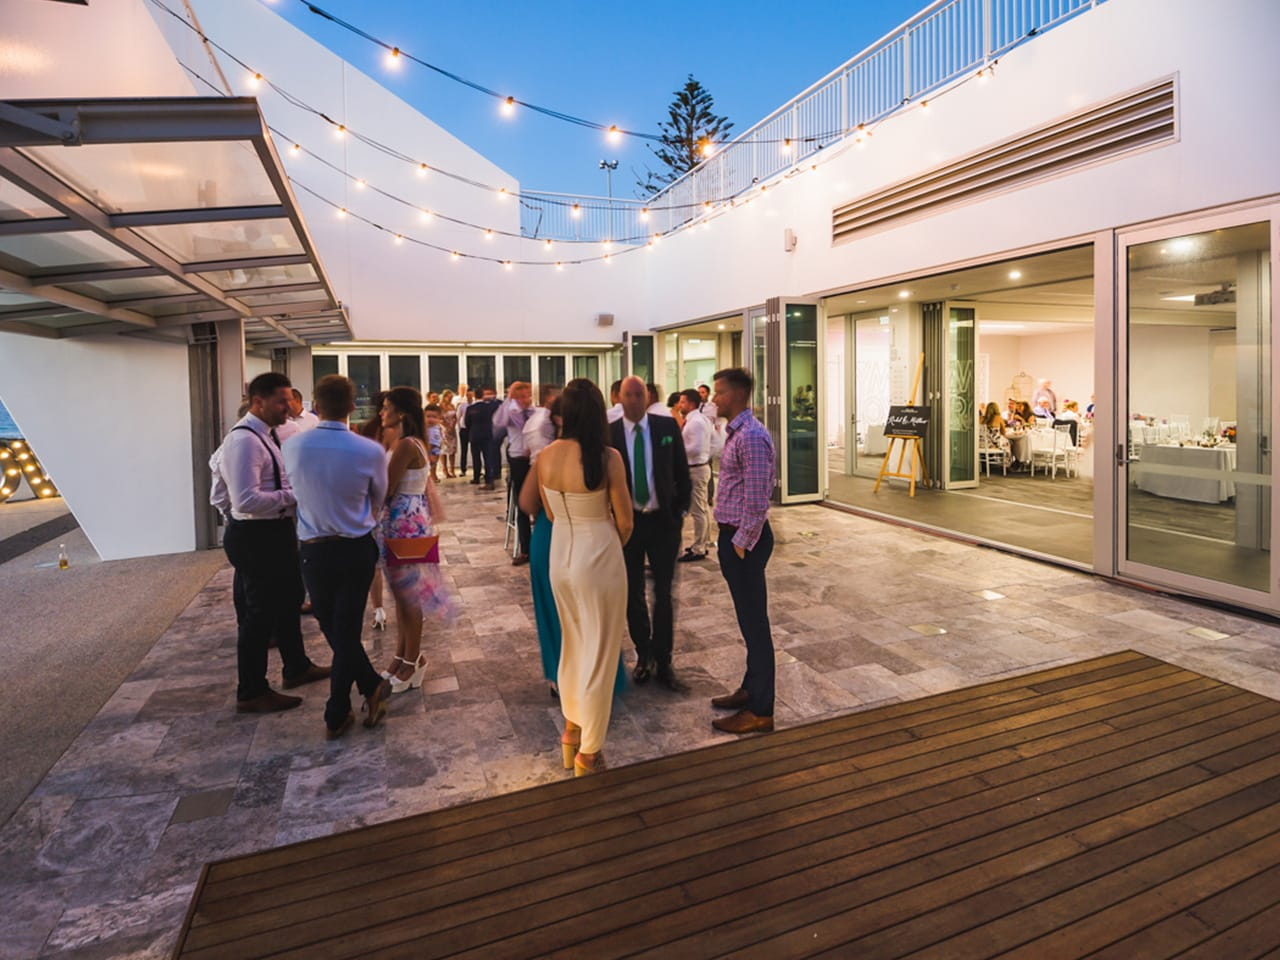 Open Air Function Room Extension With String Lights And People Gathering In Dusk